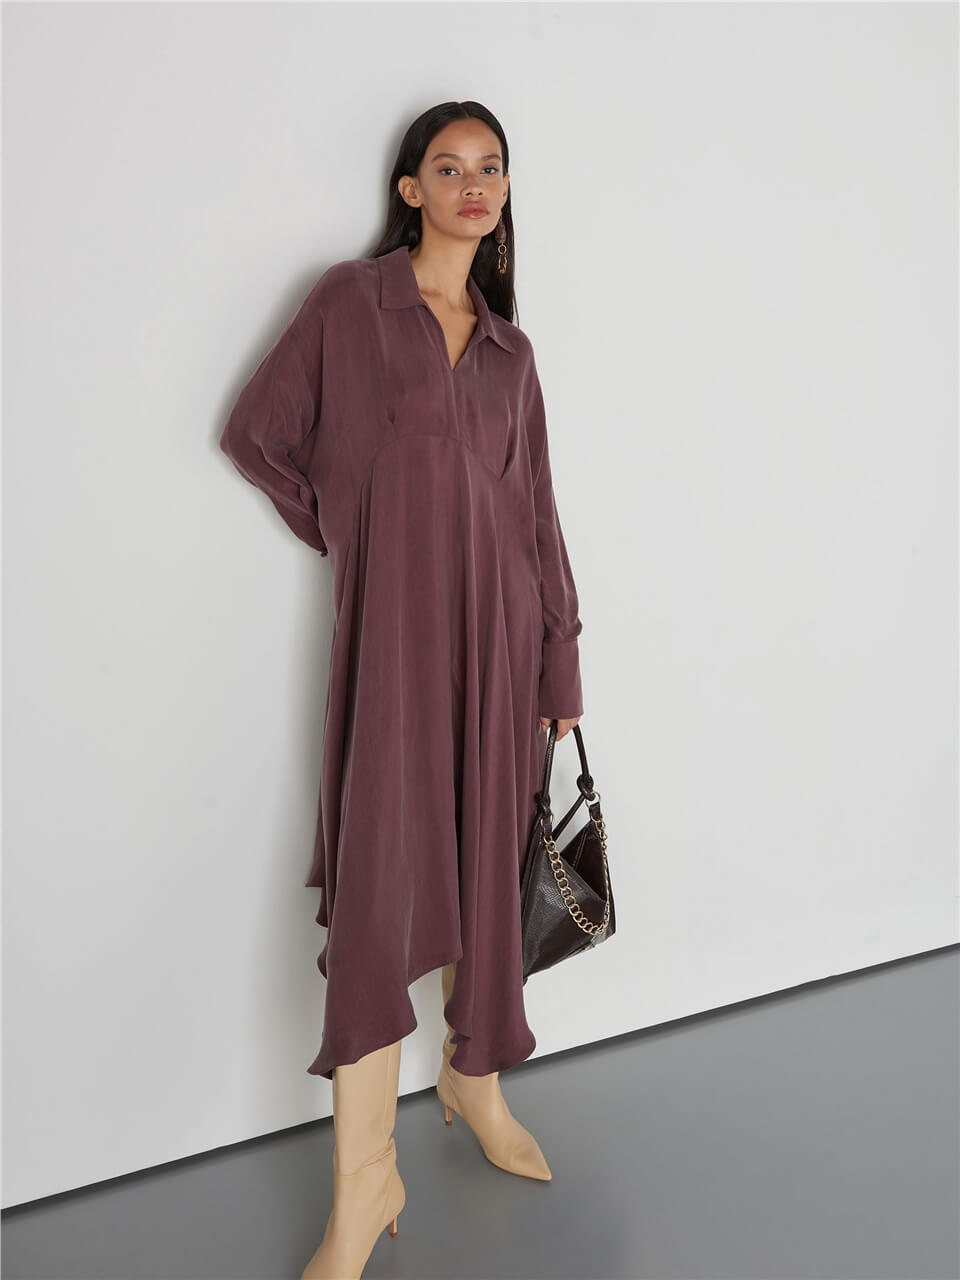 Long Sleeved Damson Color Dress